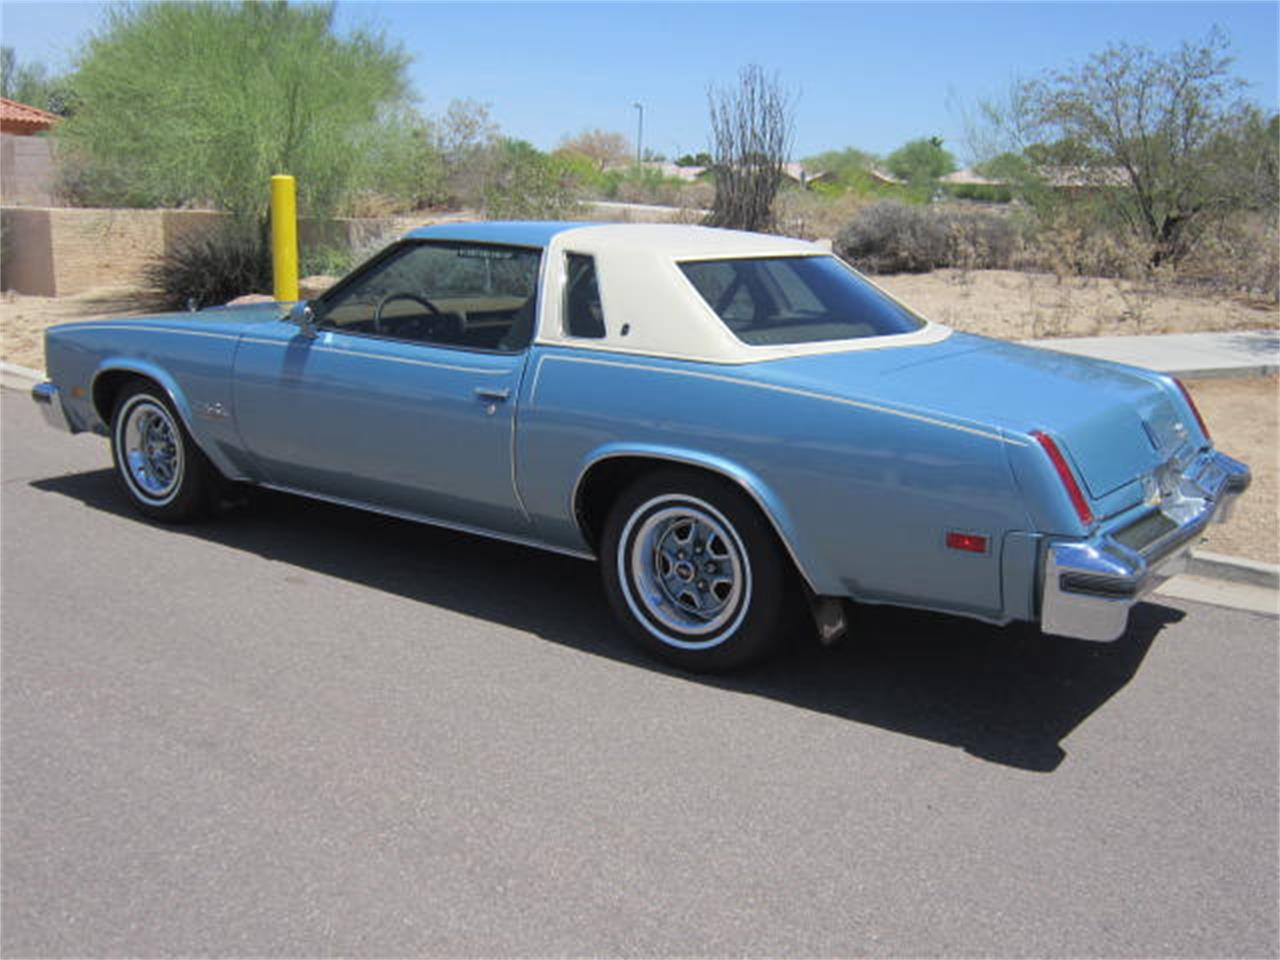 Large Picture of 1977 Oldsmobile Cutlass - $15,000.00 Offered by a Private Seller - DISY